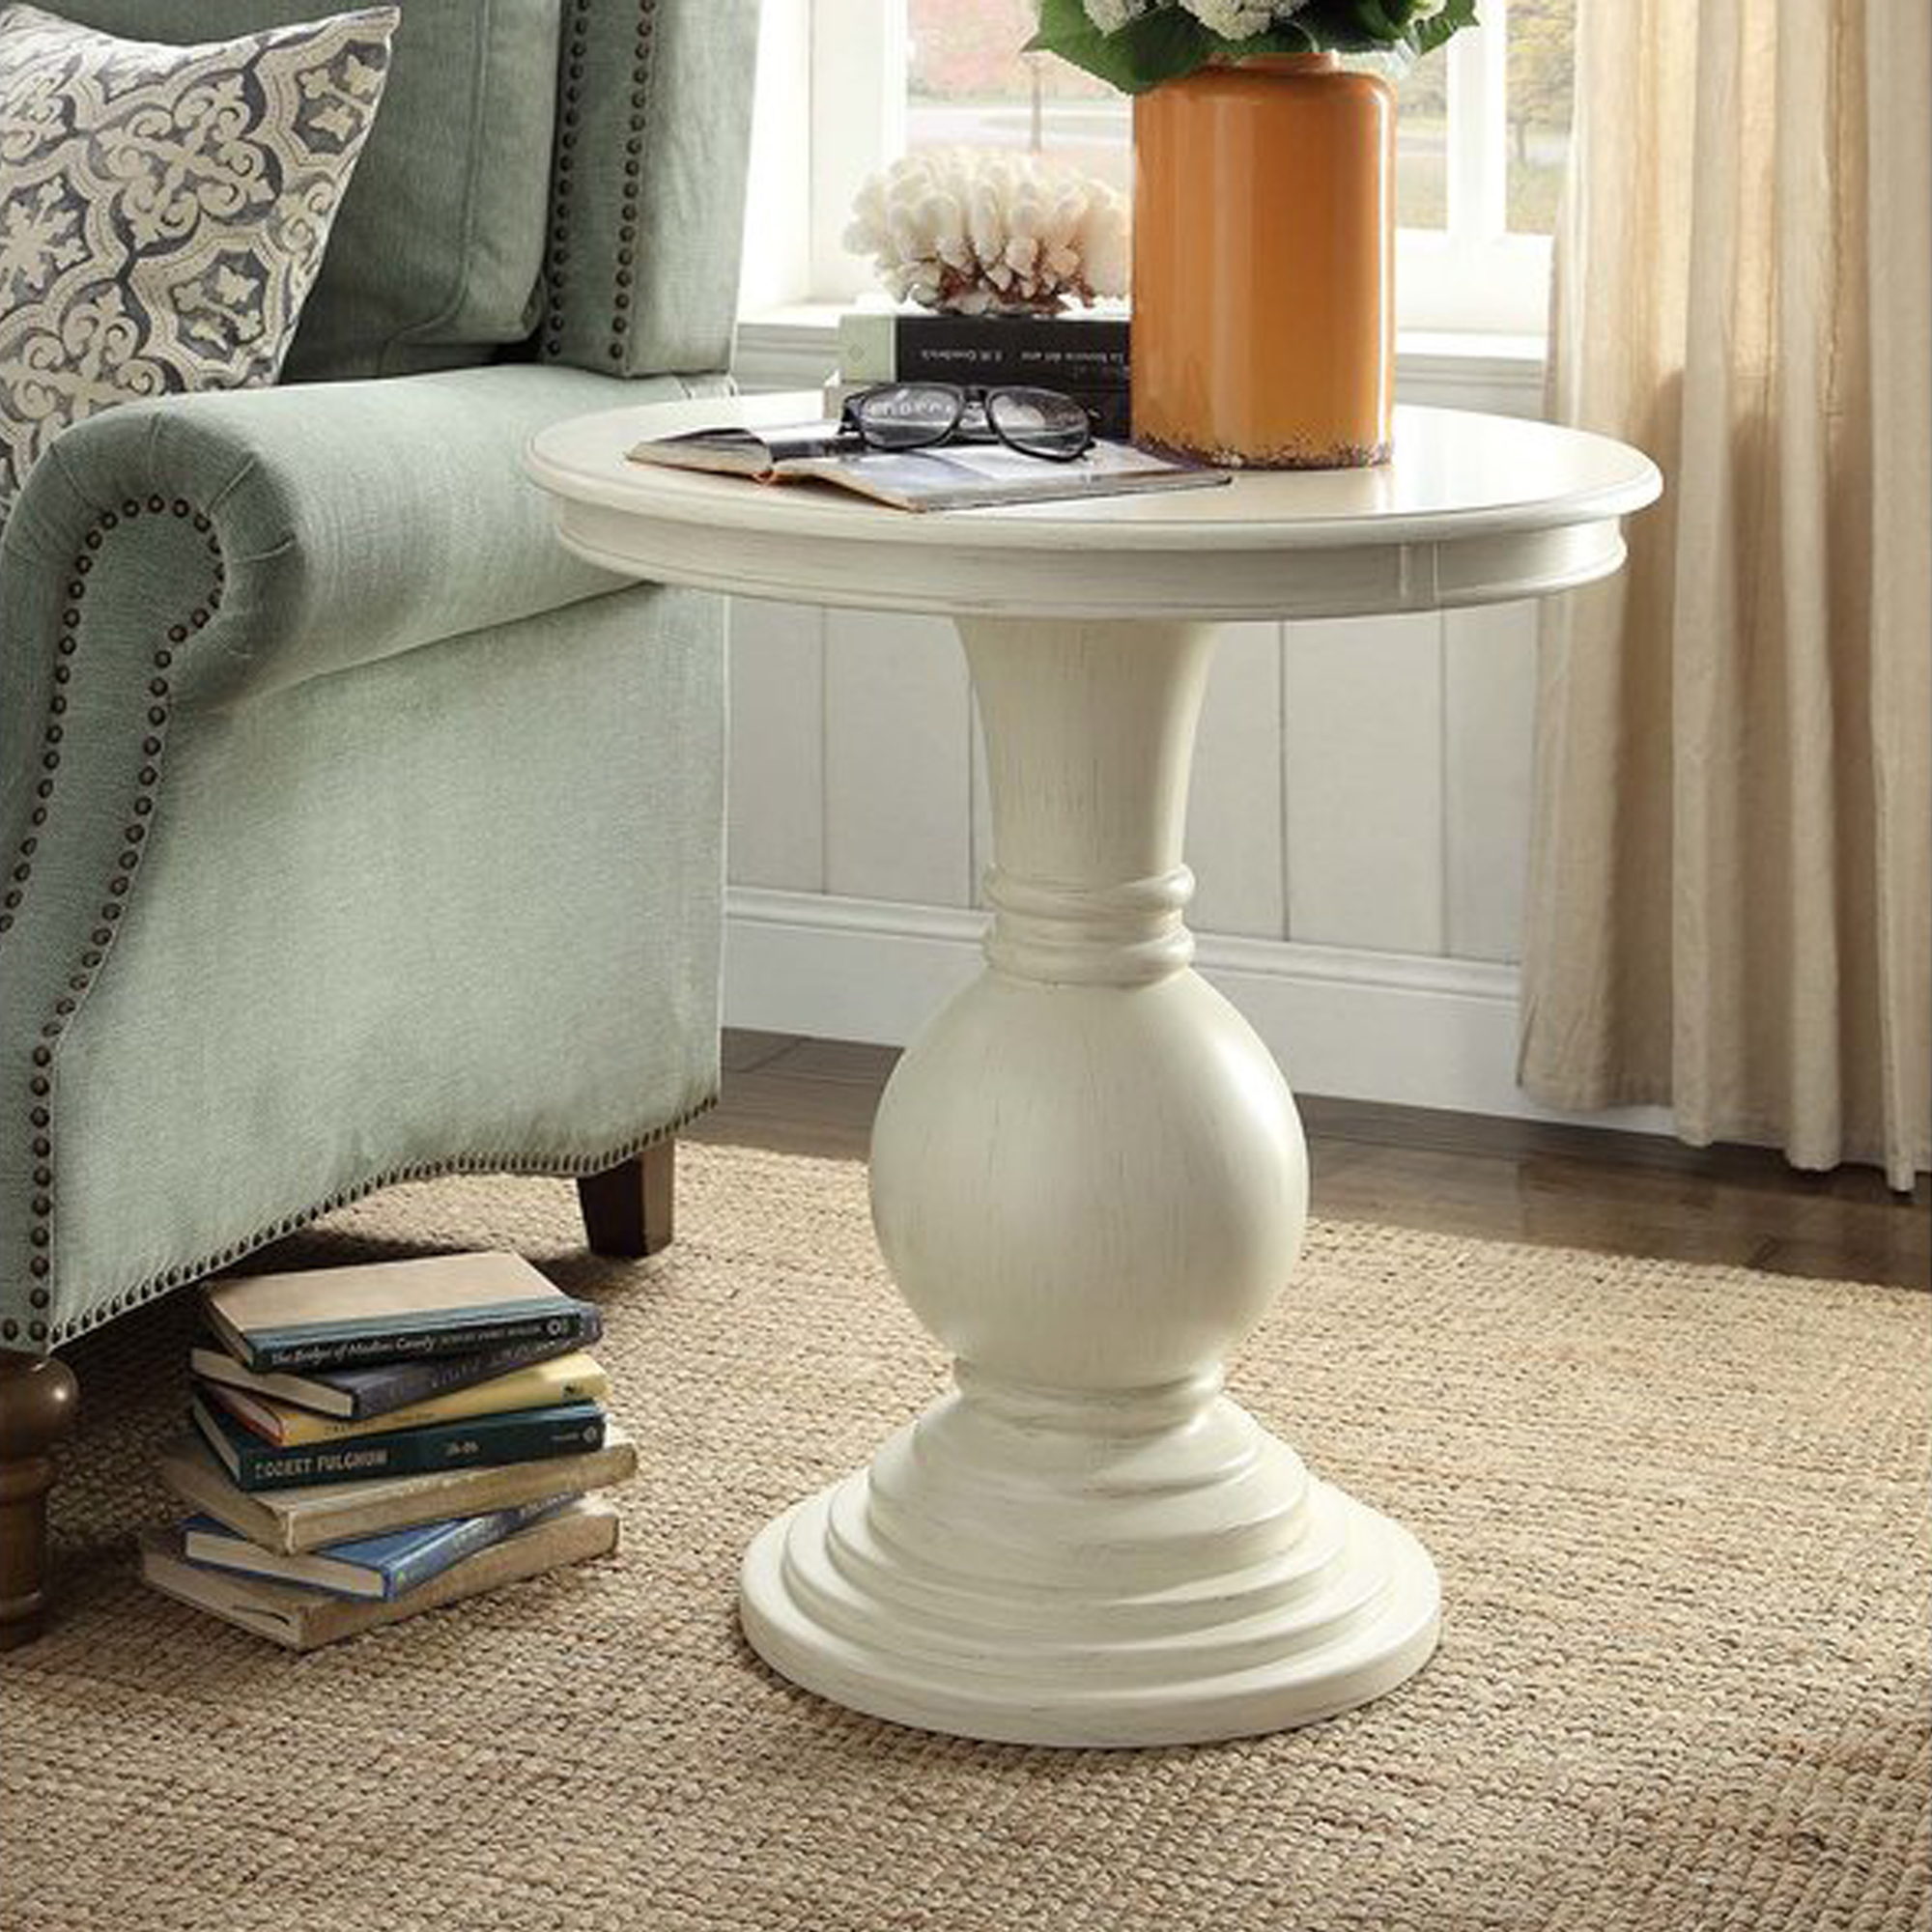 tall pedestal accent table design ideas round end tables side lamp for wrought iron small black distressed off white best accentuate your living cabbage rose tiffany room